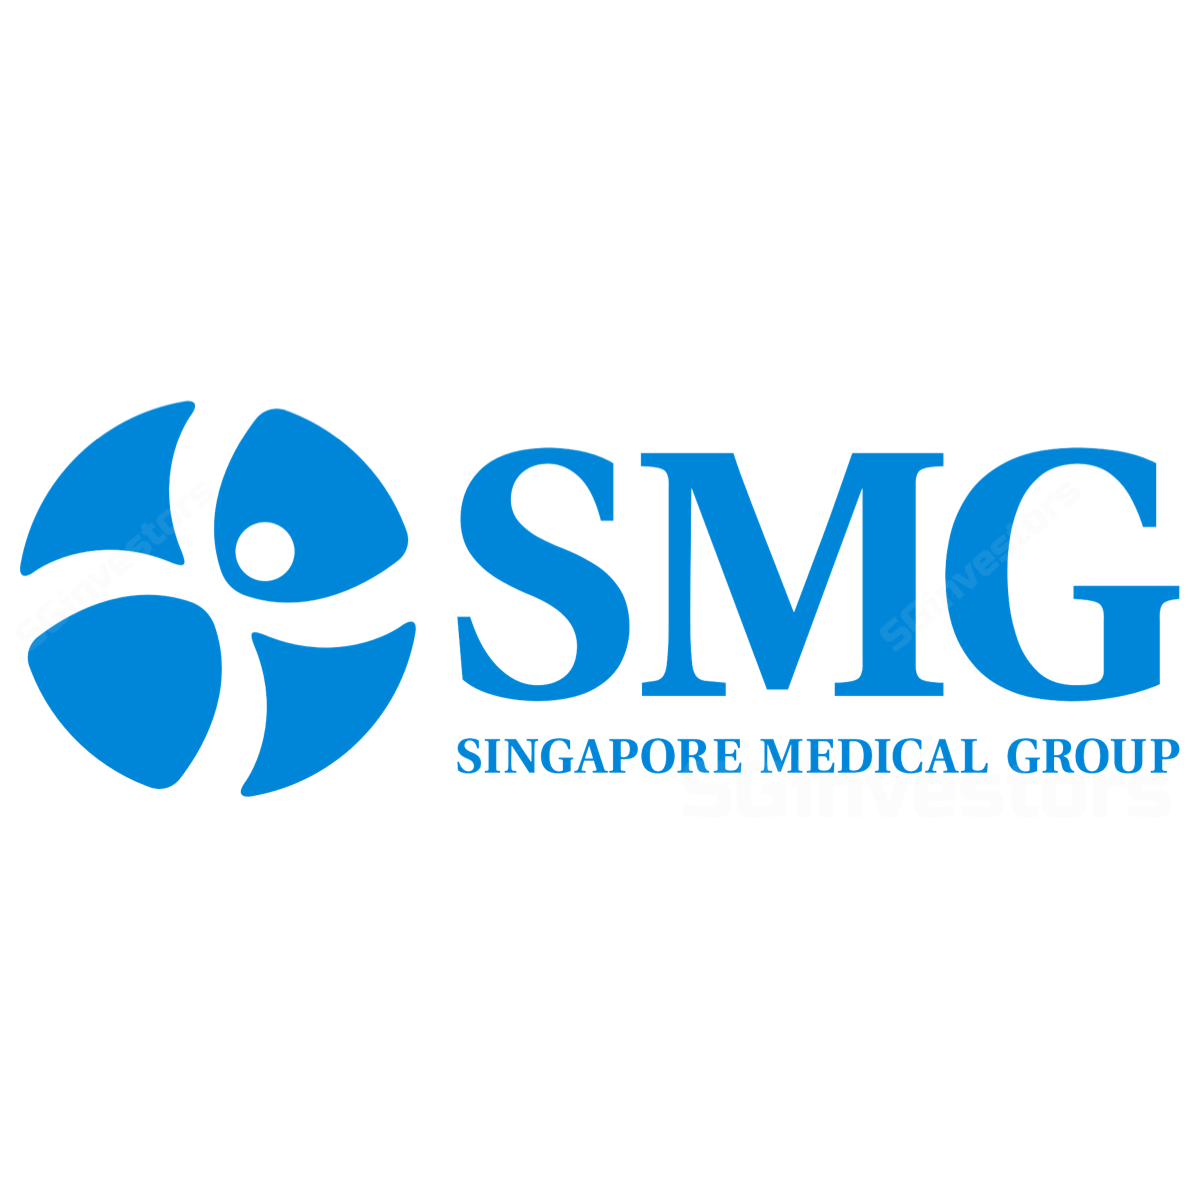 Singapore Medical Group - RHB Invest 2017-03-01: Soaring To New Heights